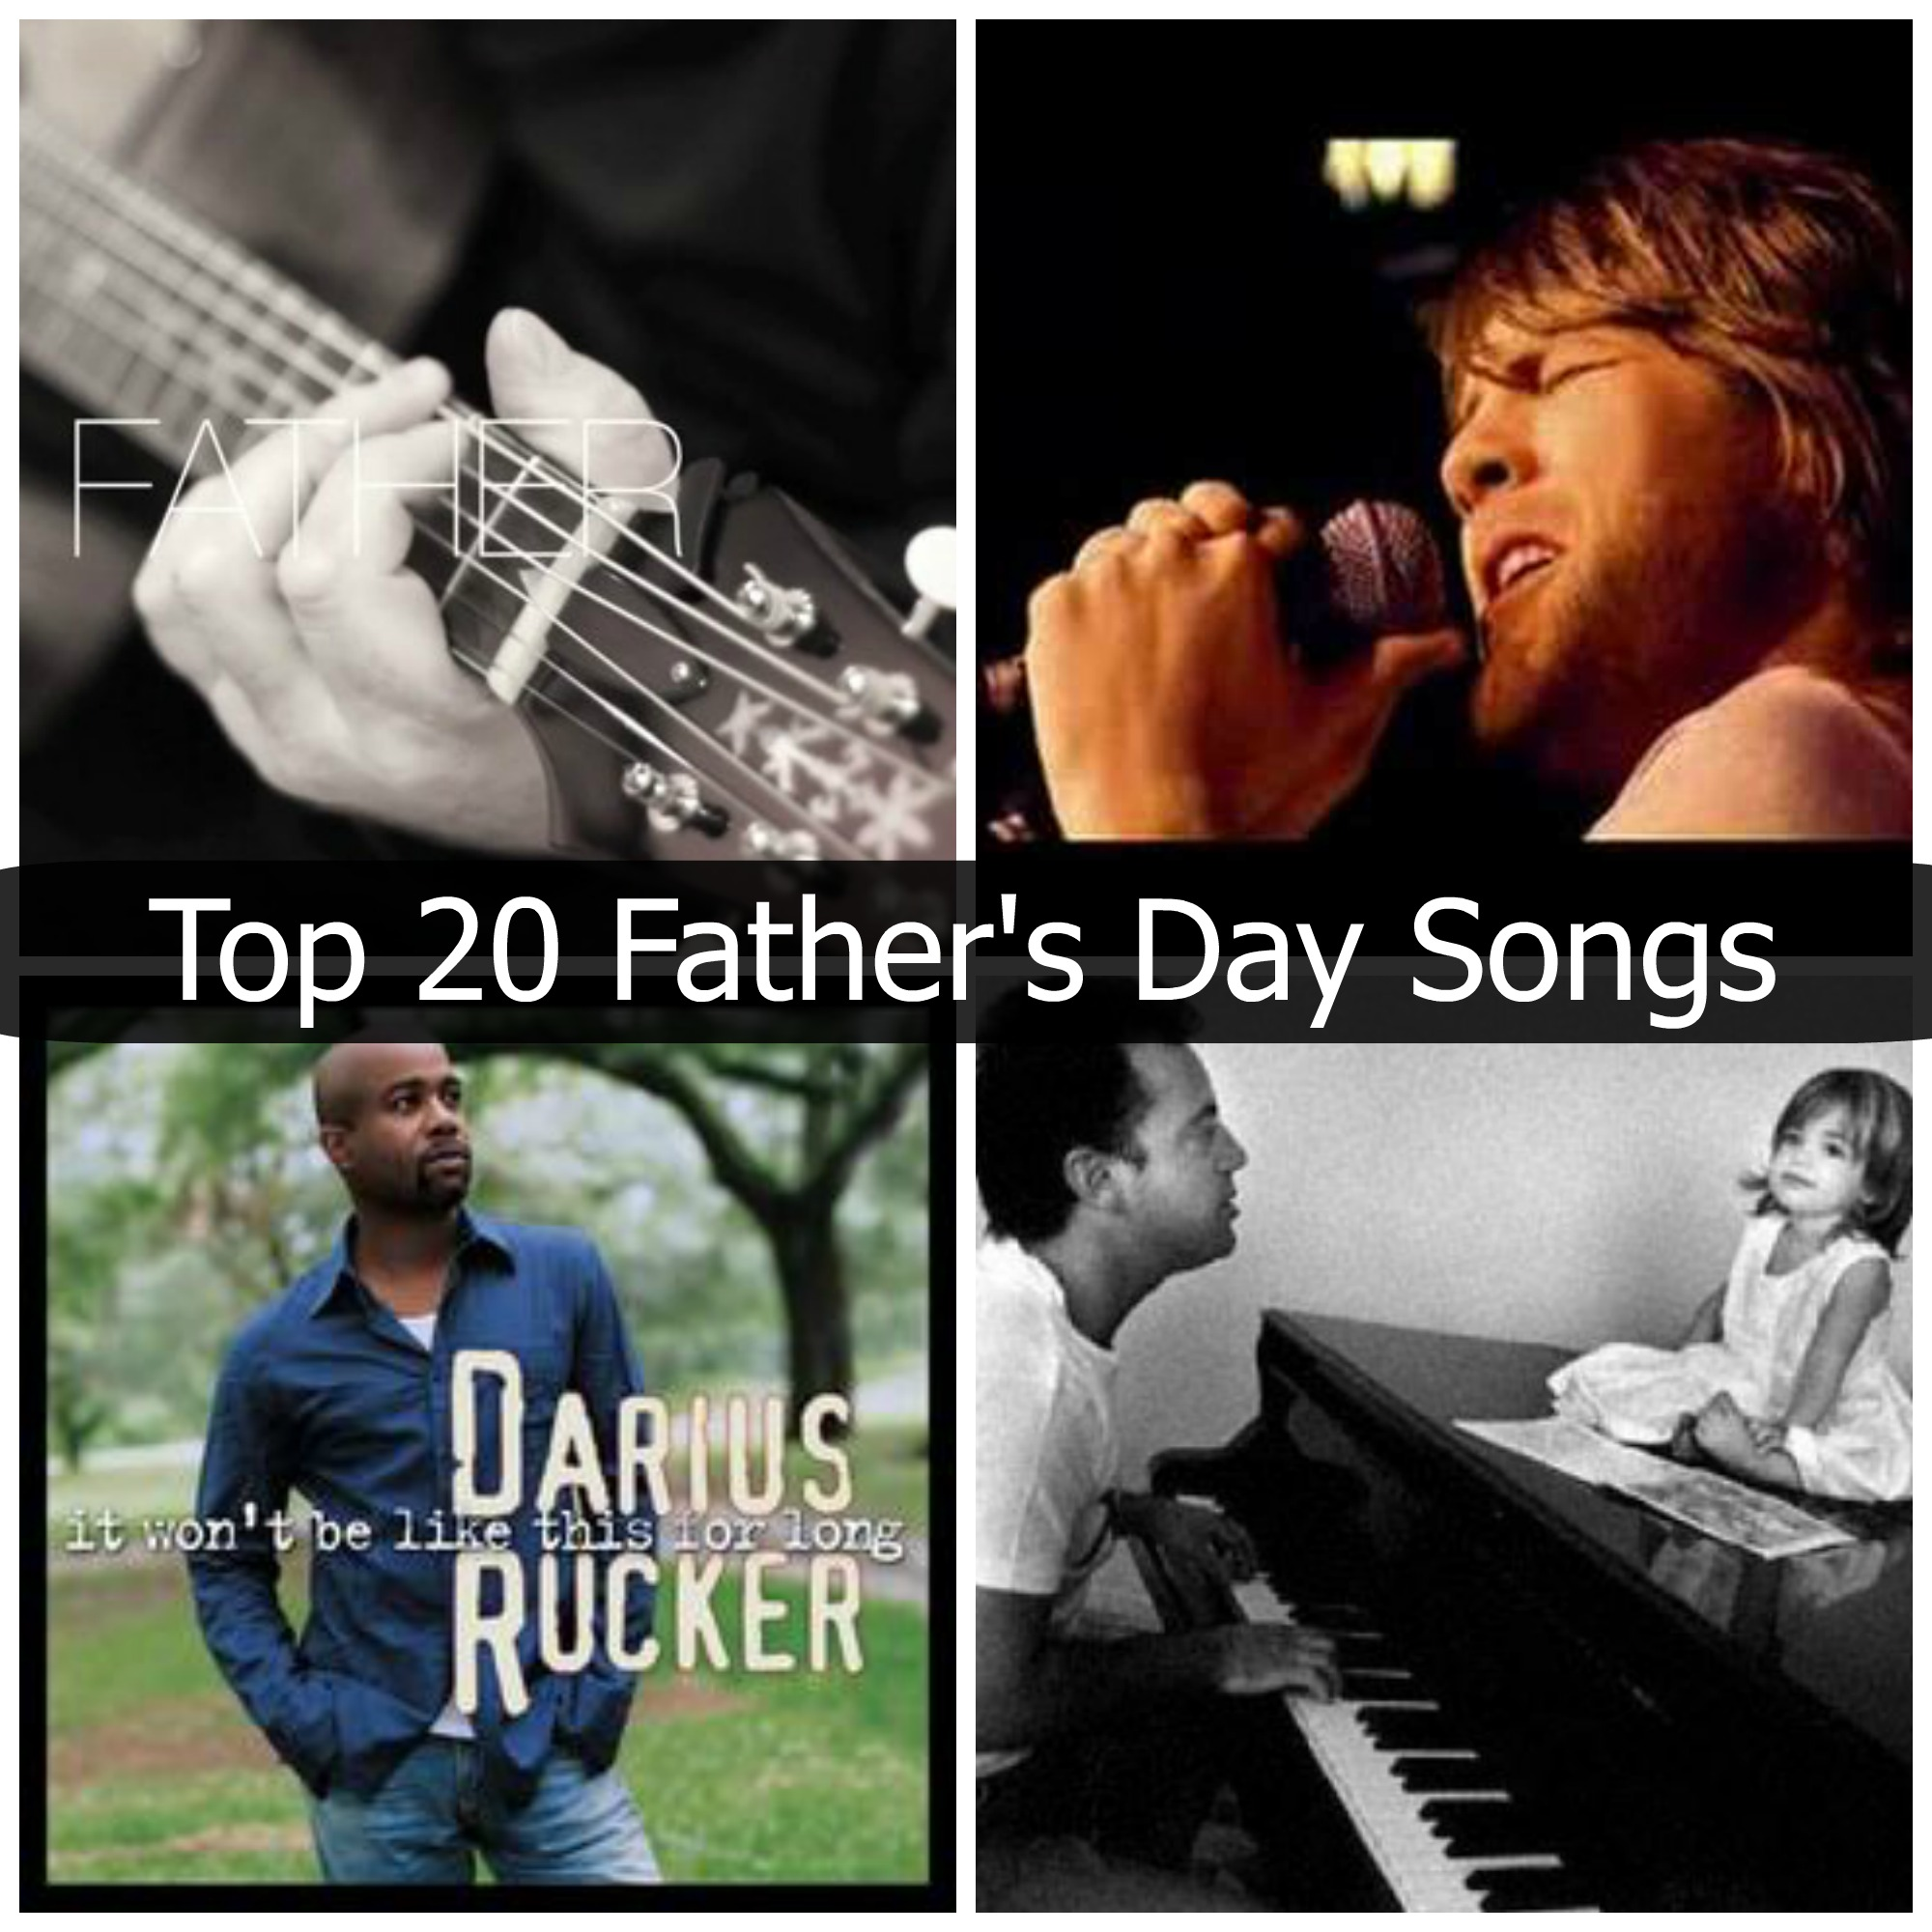 Top 20 Father's Day Songs